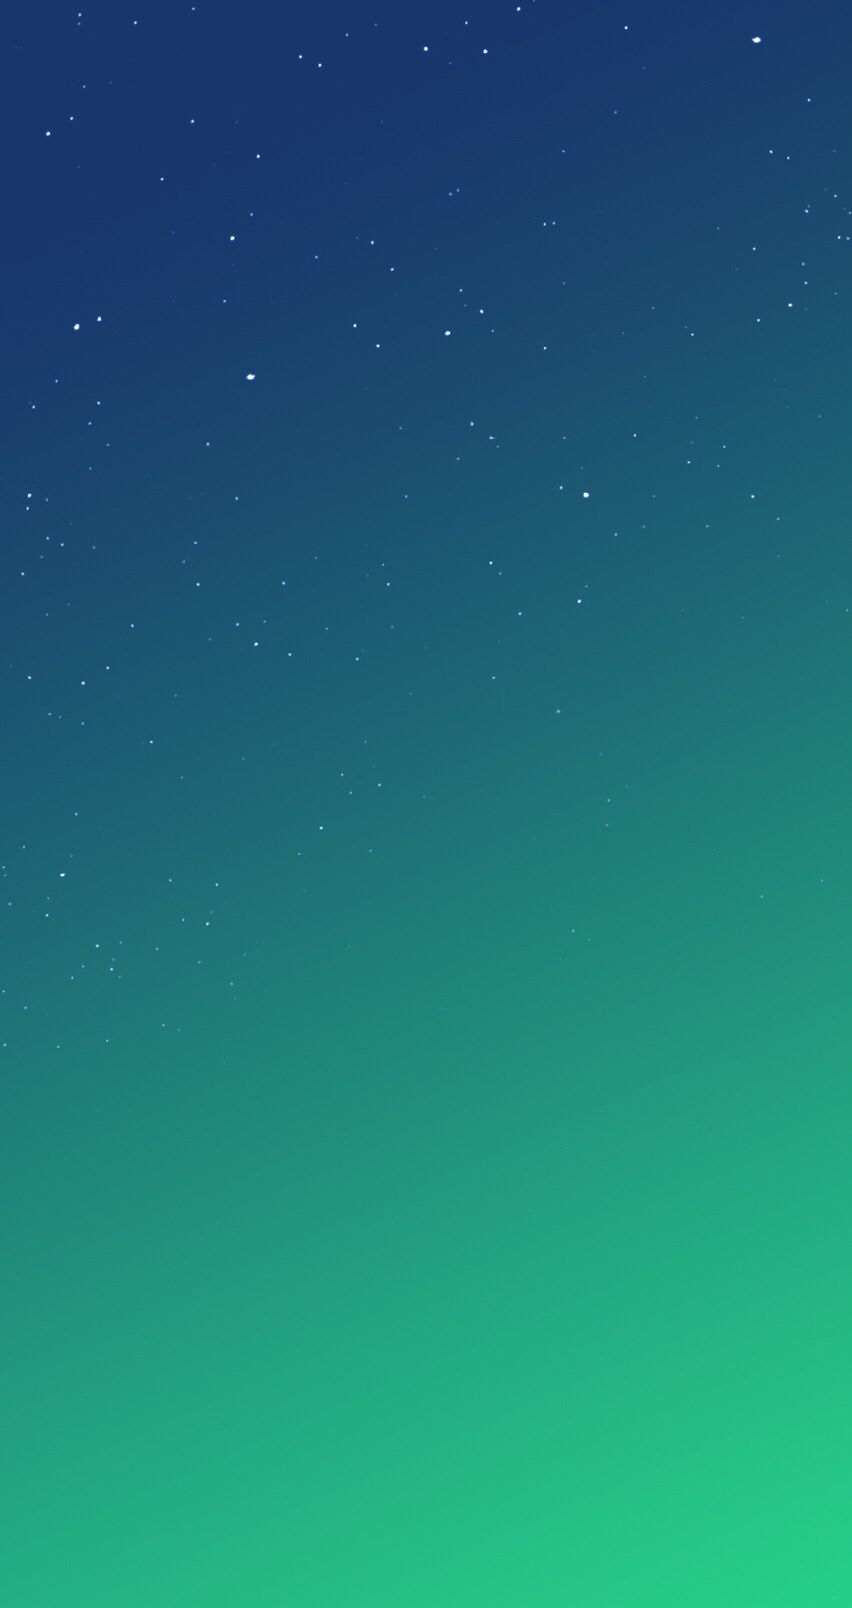 Blue And Green Wallpaper With Stars Galaxy Wallpaper Samsung Wallpaper Smartphone Wallpaper